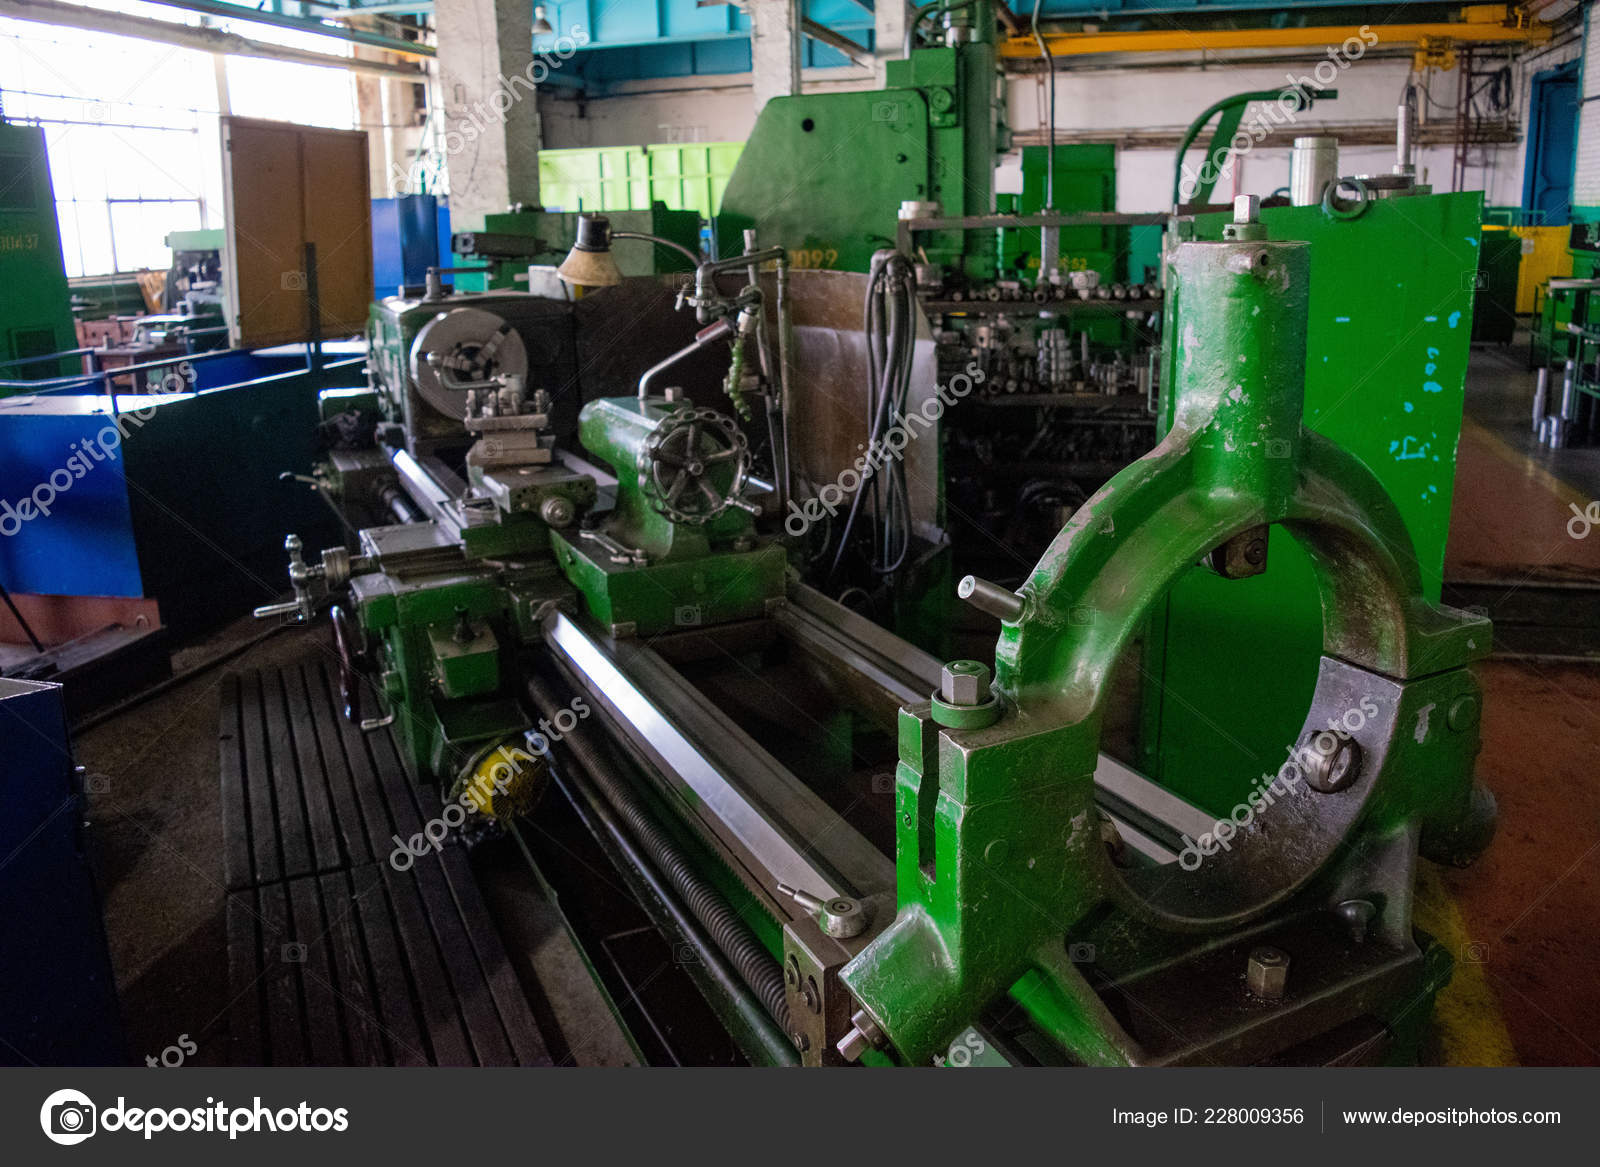 Produce industrial metal-cutting machines